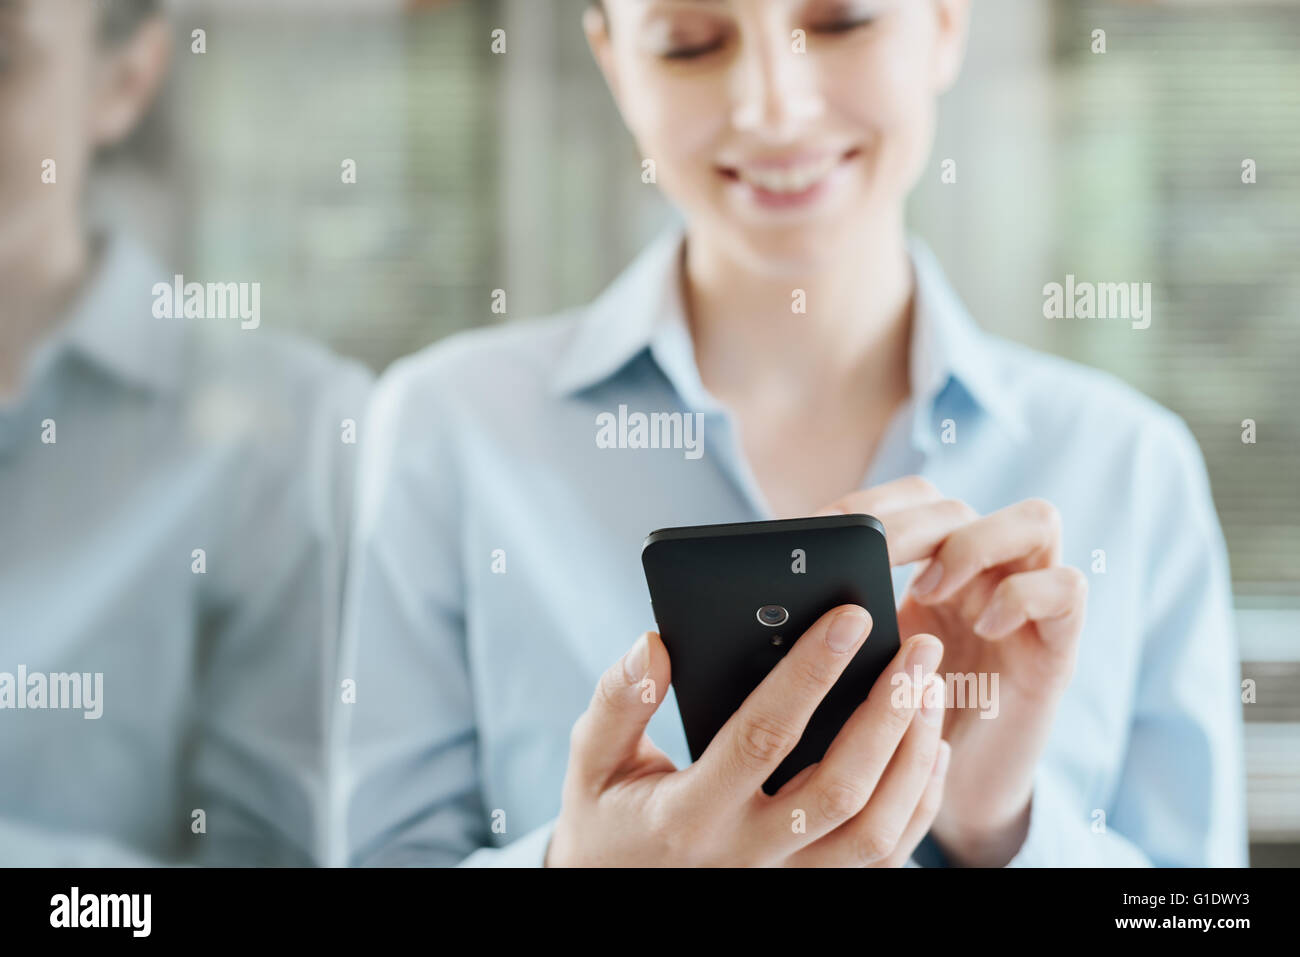 Beautiful smiling young woman using a smart phone, leaning on a window and reflecting on glass - Stock Image